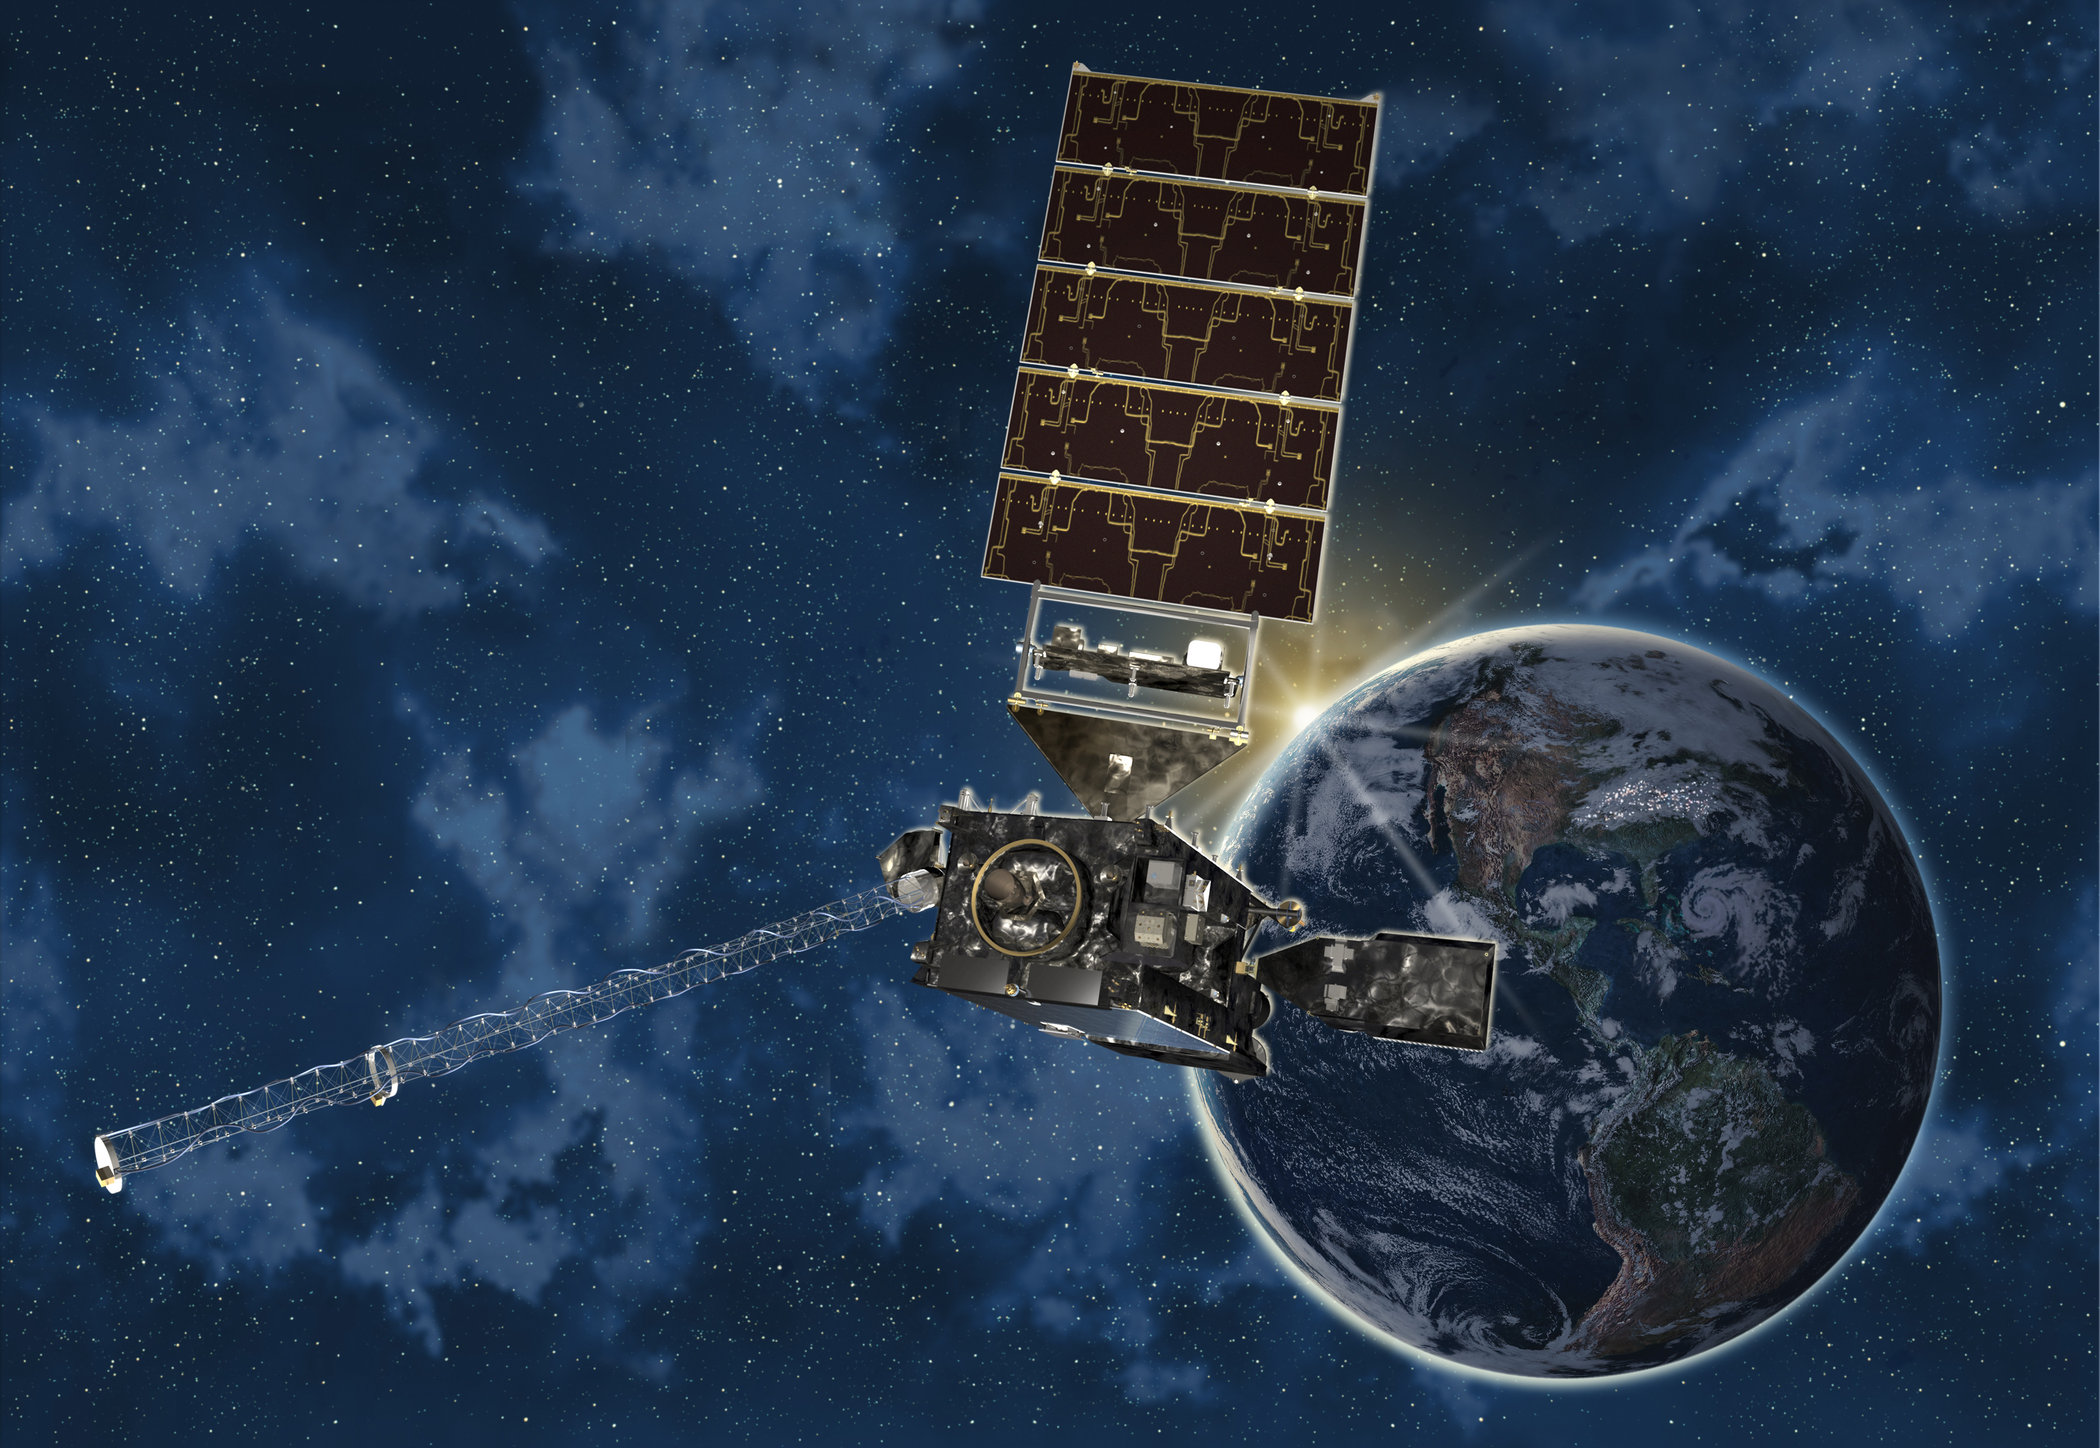 The GOES-R Satellite